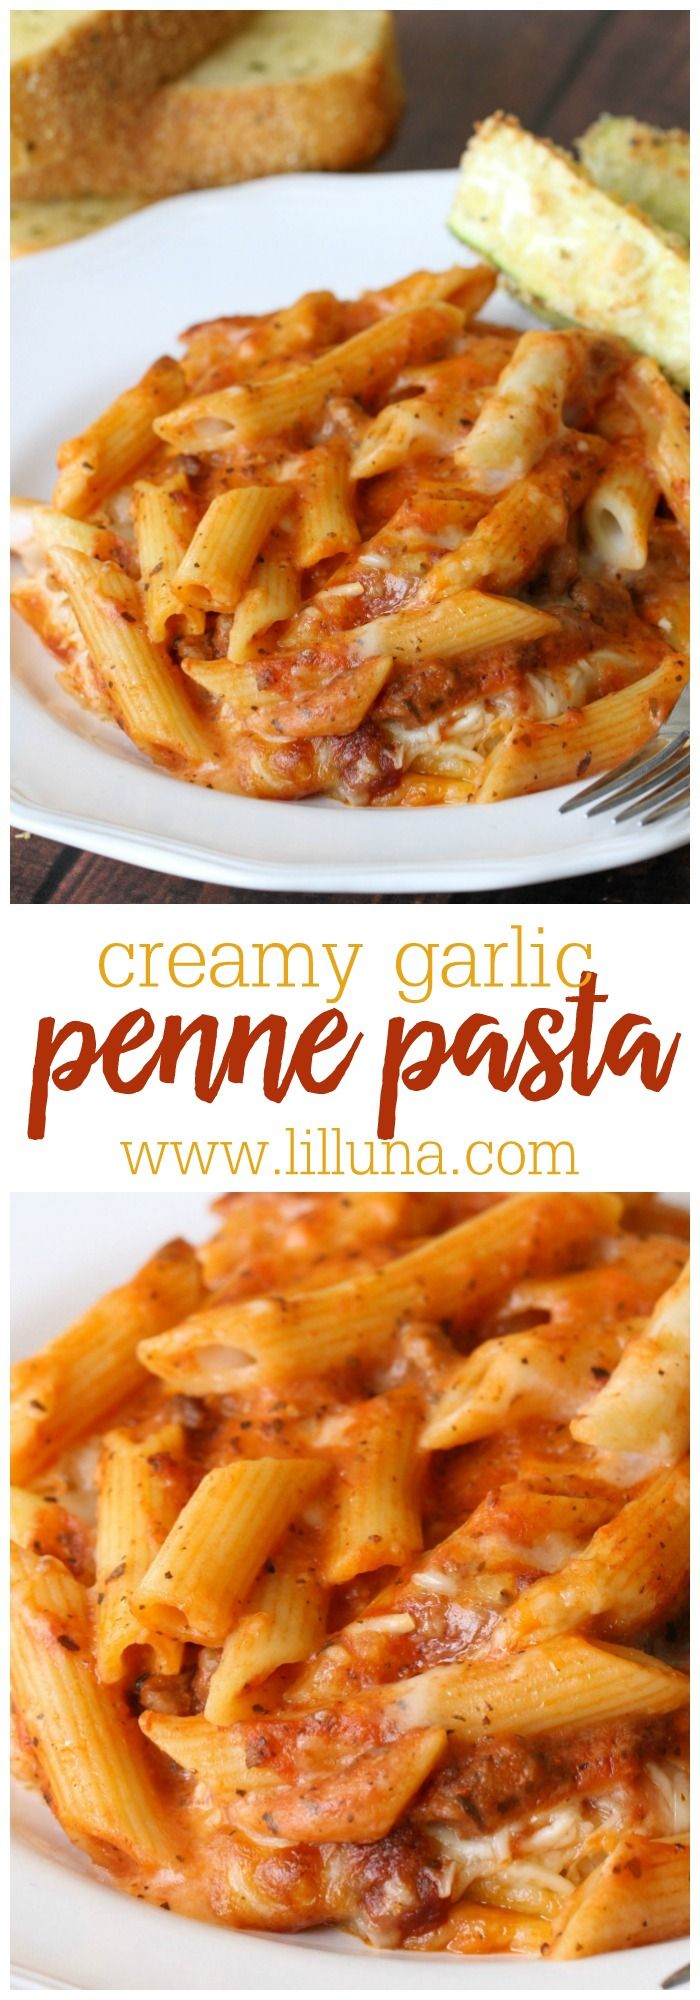 Photo of Mozzarella Penne